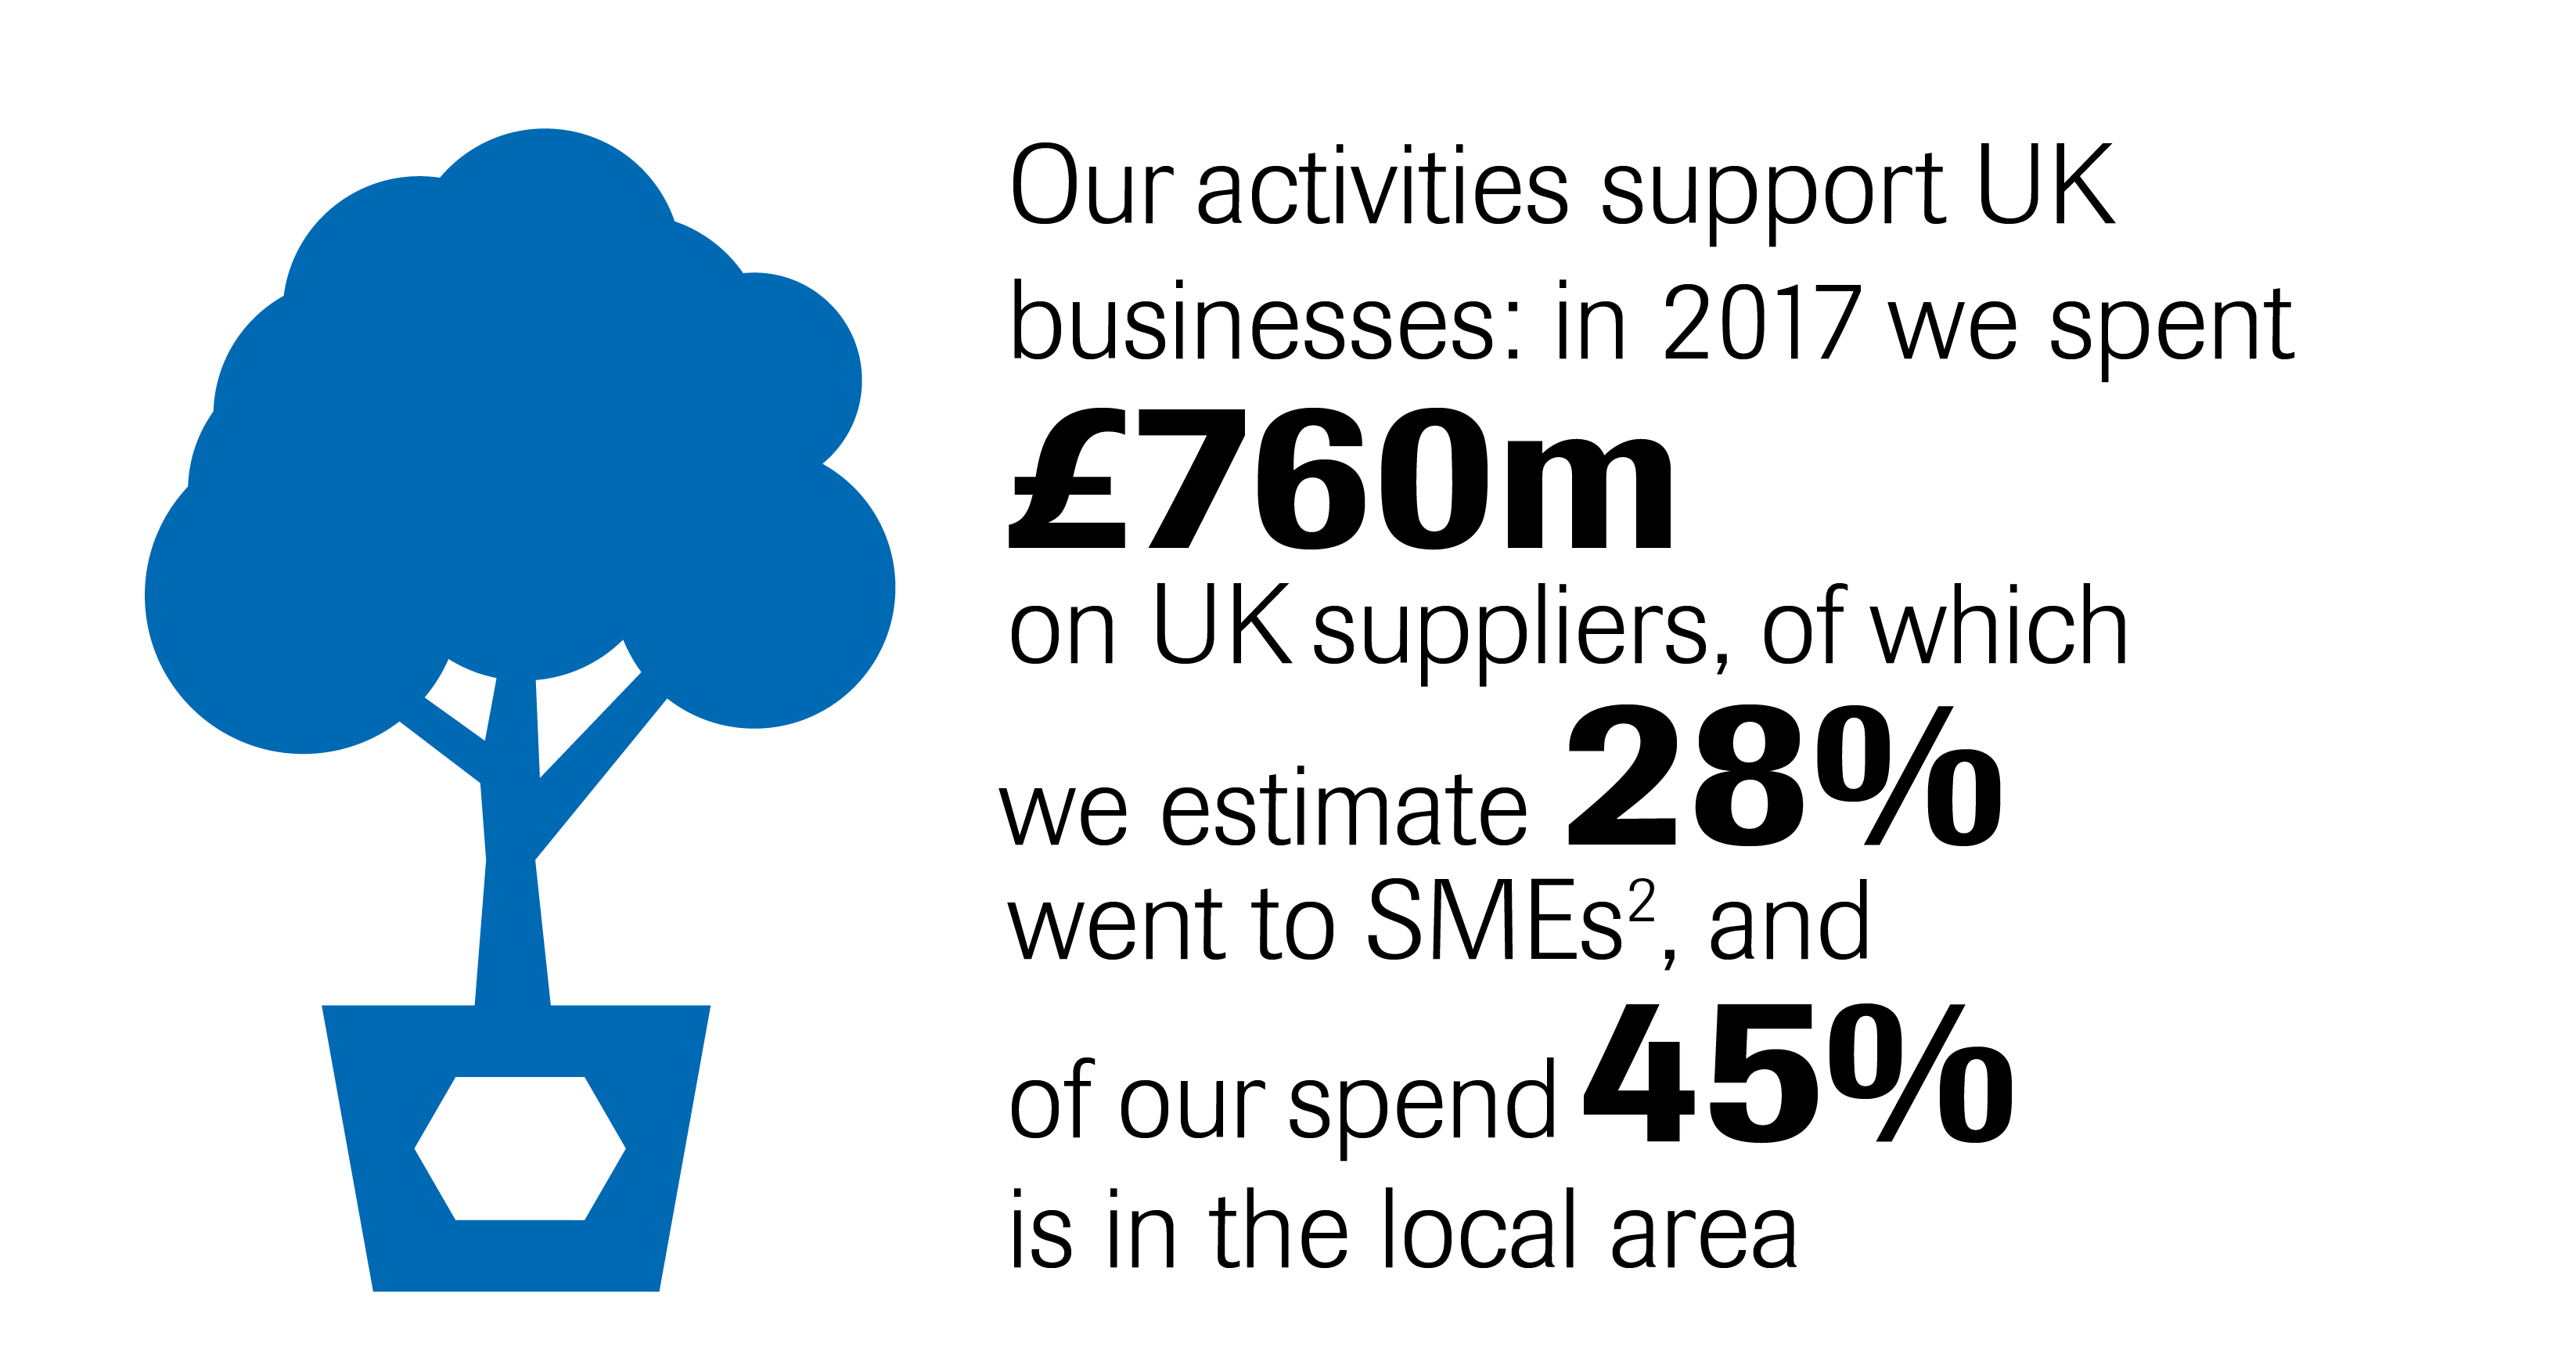 Our activities support UK businesses: in 2017 we spent 760m on UK suppliers, of which we estimate 28% went to SME's, and of our spend 45% is in the local area.